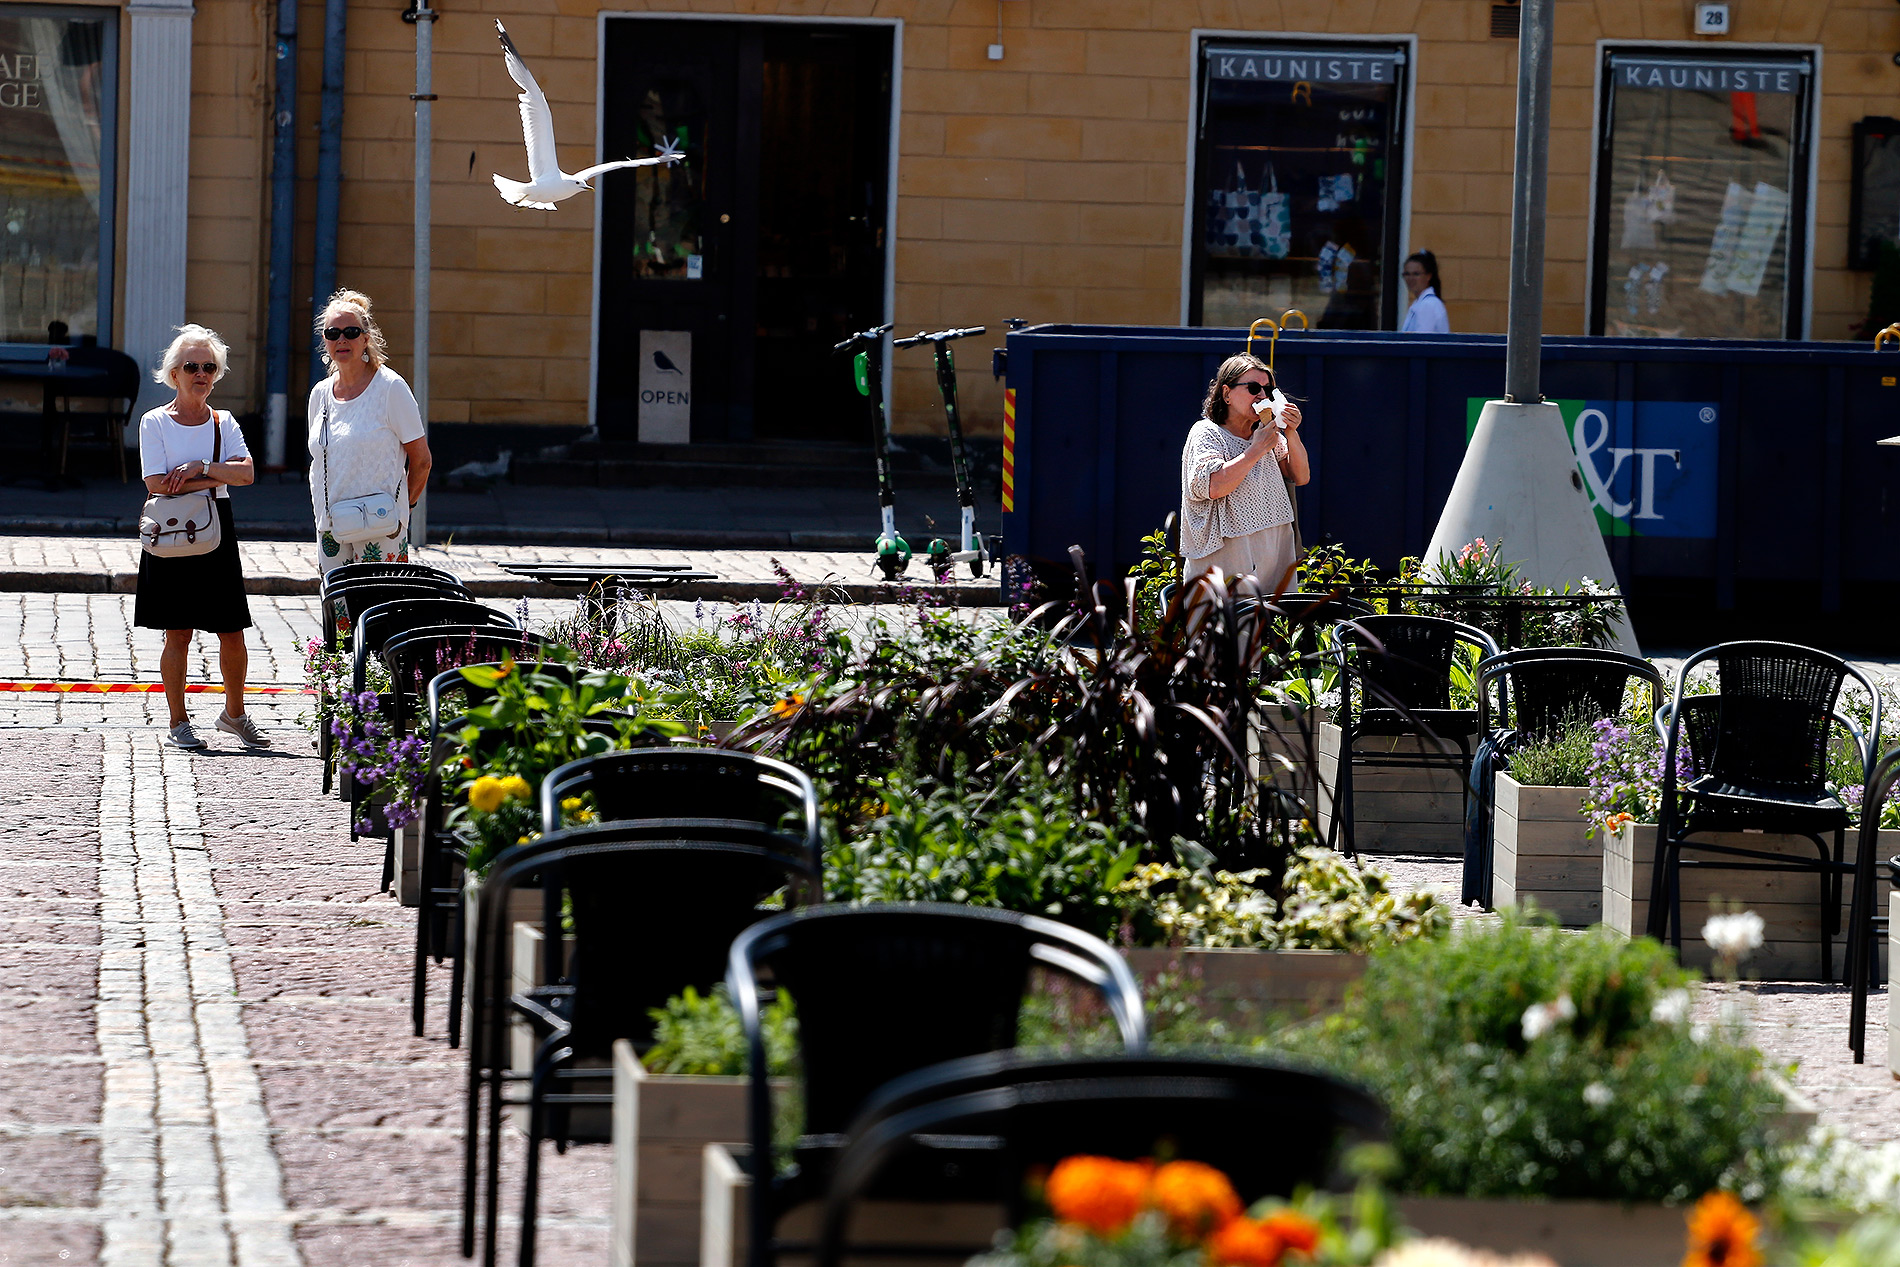 The seagulls are likely to love the open-air food court. Luckily, the area will be covered with a bird net. Picture: Tony Öhberg/Finland Today